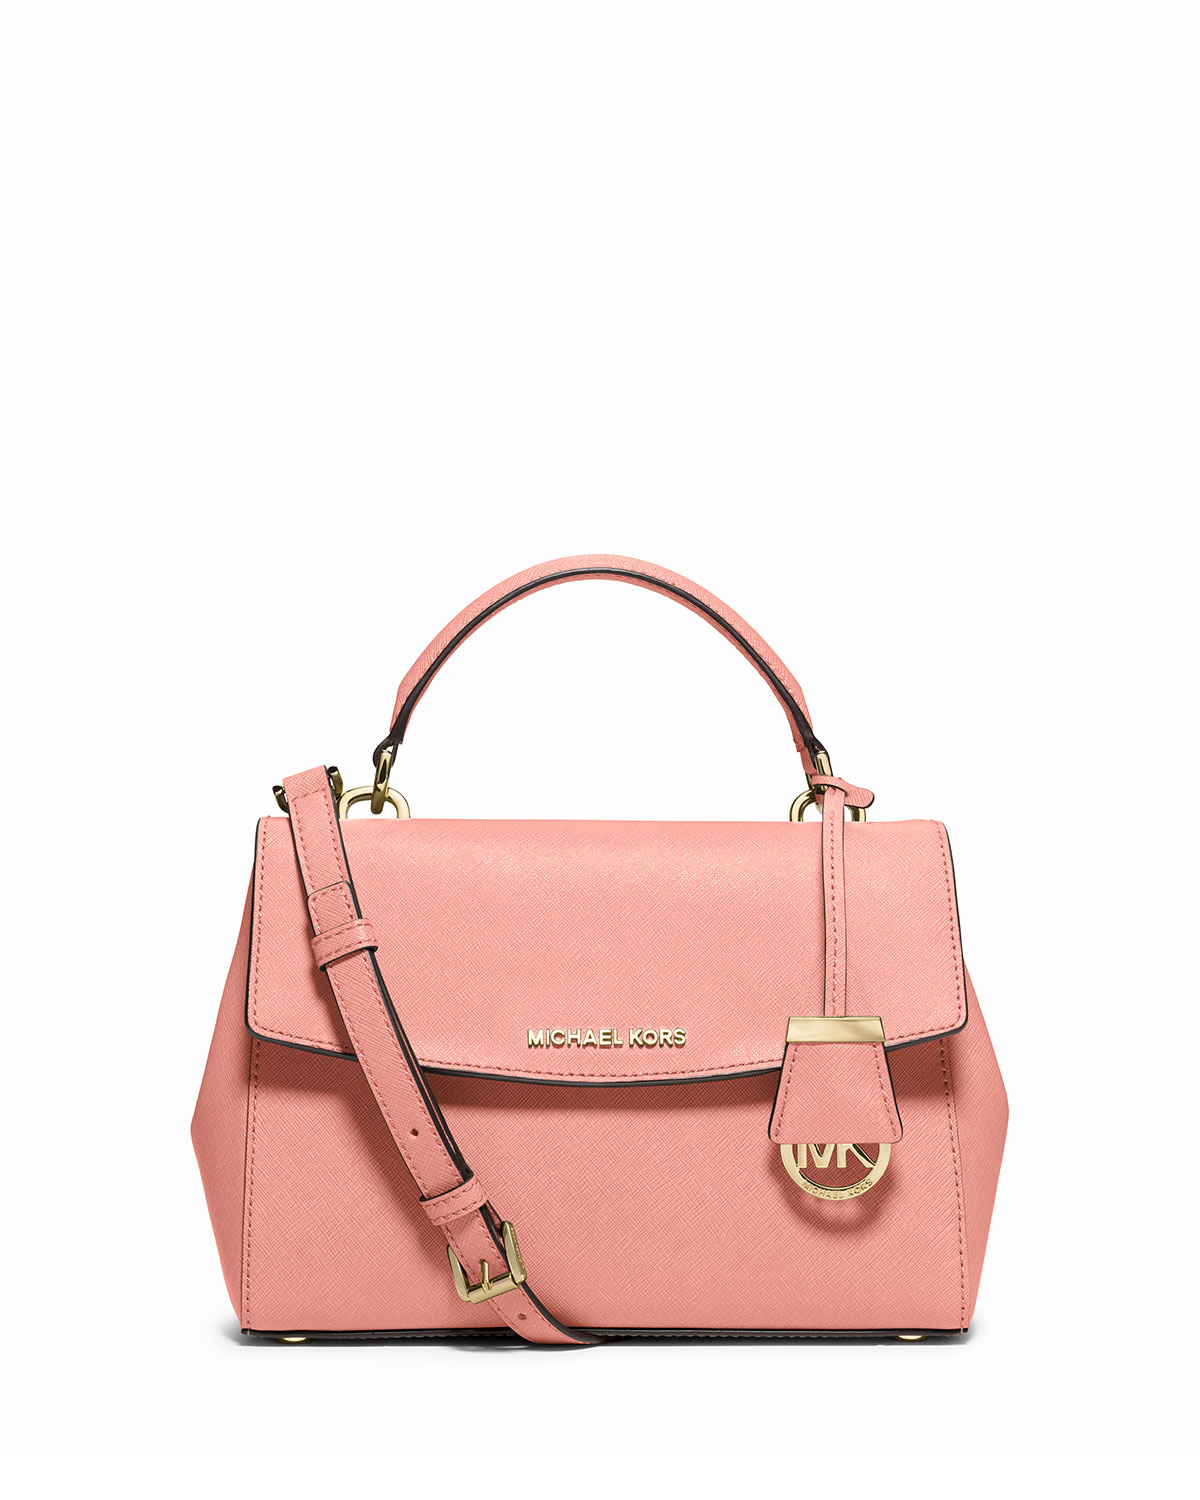 Ava Small Saffiano Leather Satchel Bag, Pale Pink